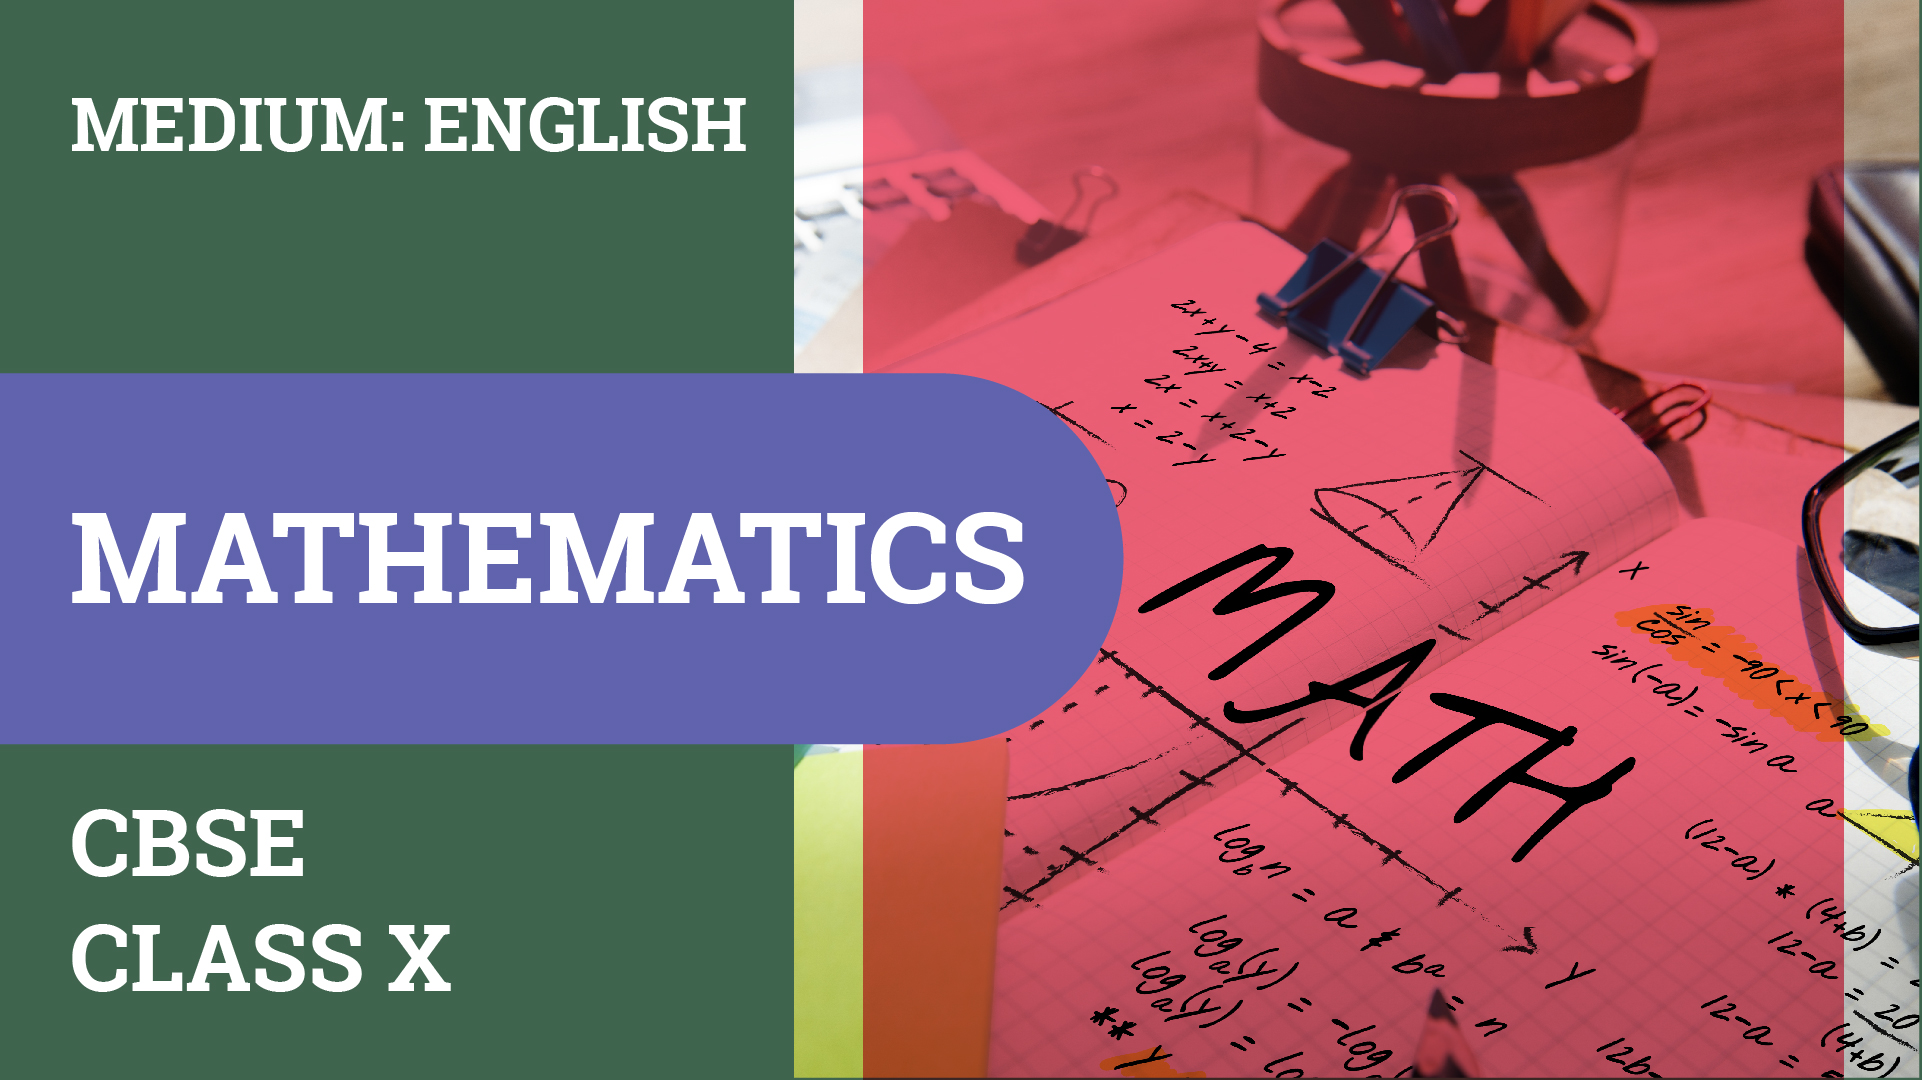 CBSE CLASS 10 MATHEMATICS VIDEO LECTURE